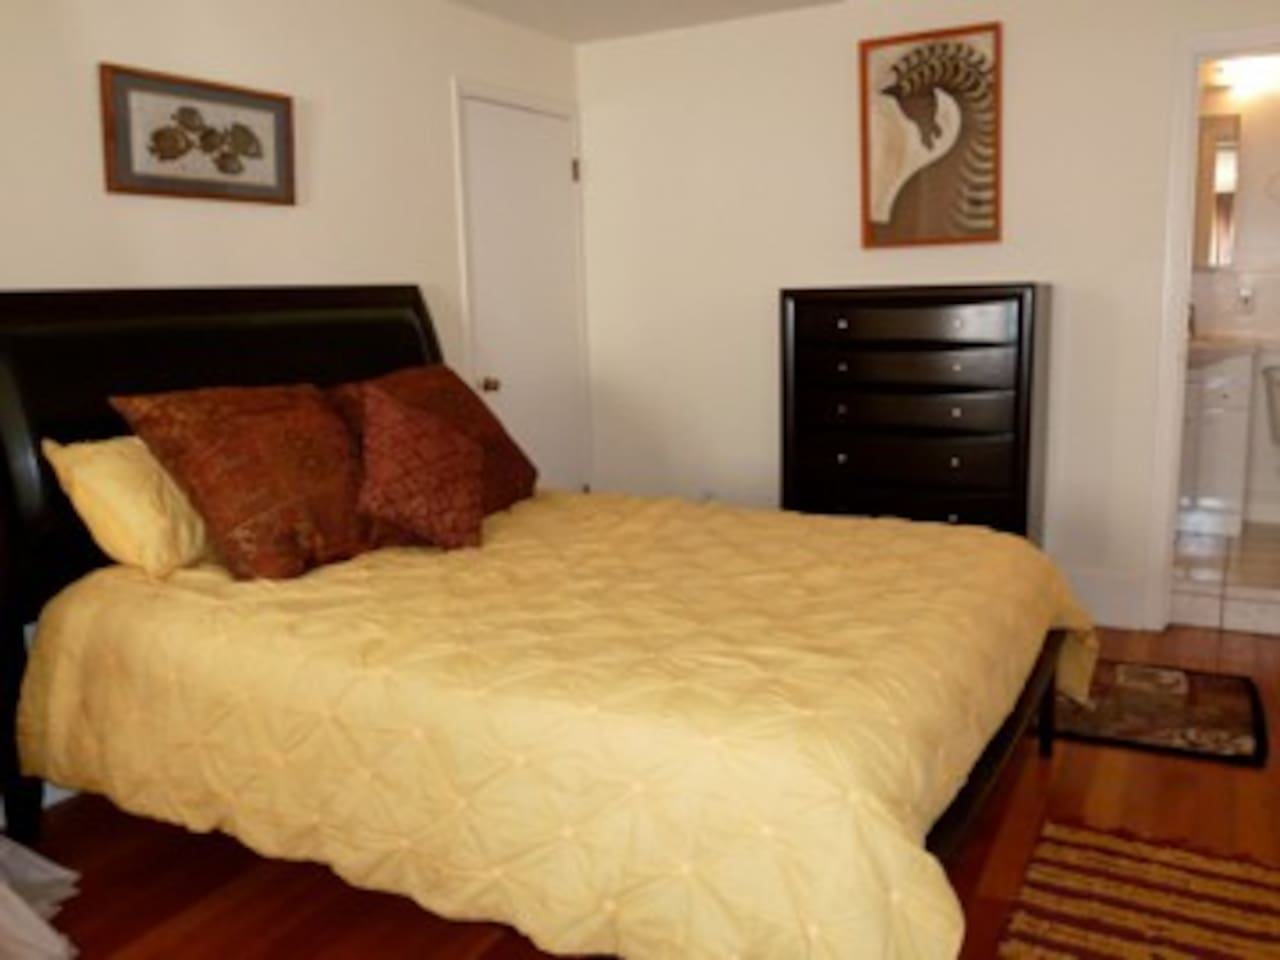 Queensize pillowtop, private washer/dryer, walk in closet